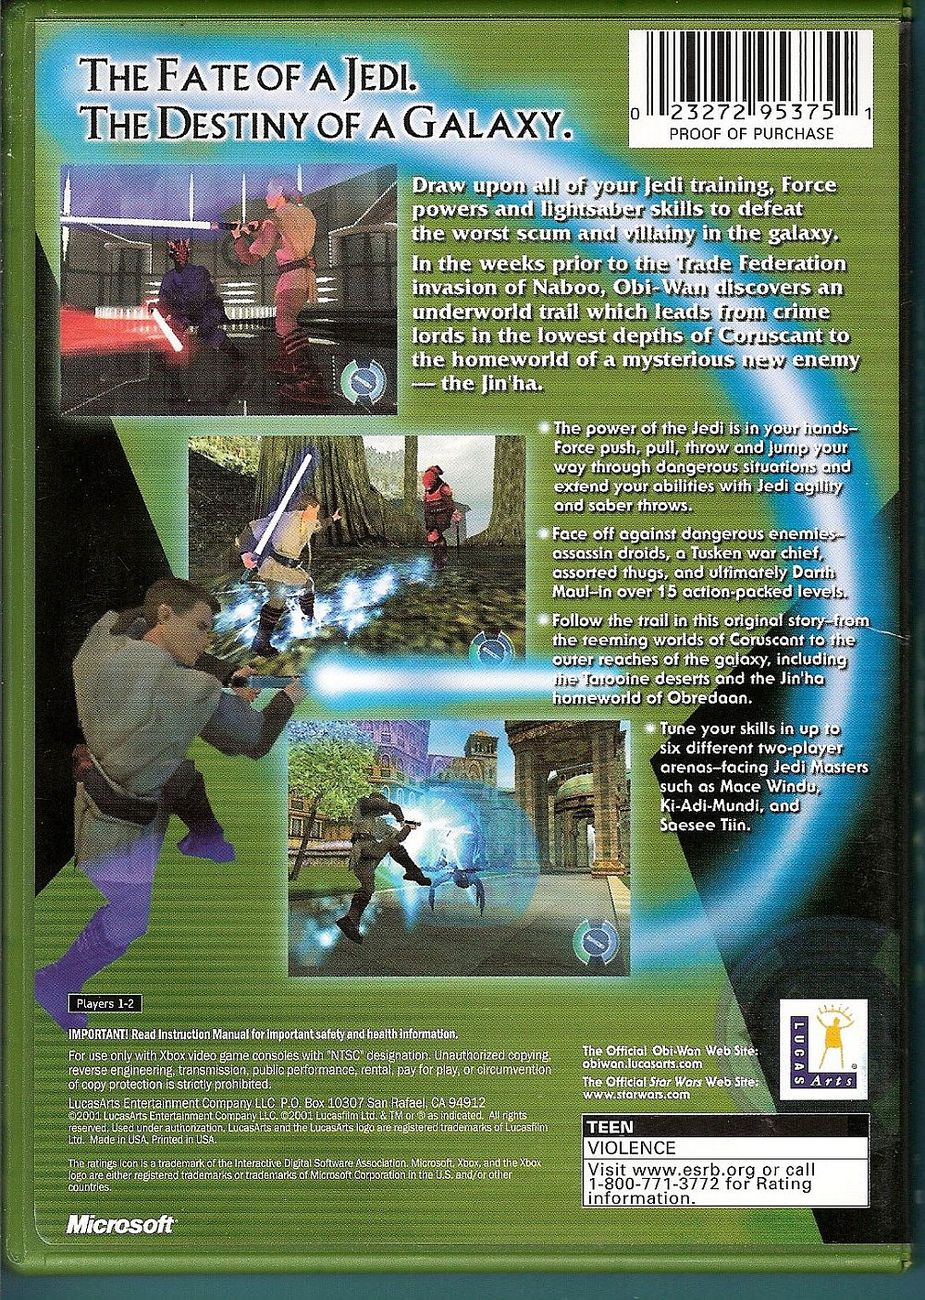 Image 1 of Star Wars Obi-Wan XBox video game 2001